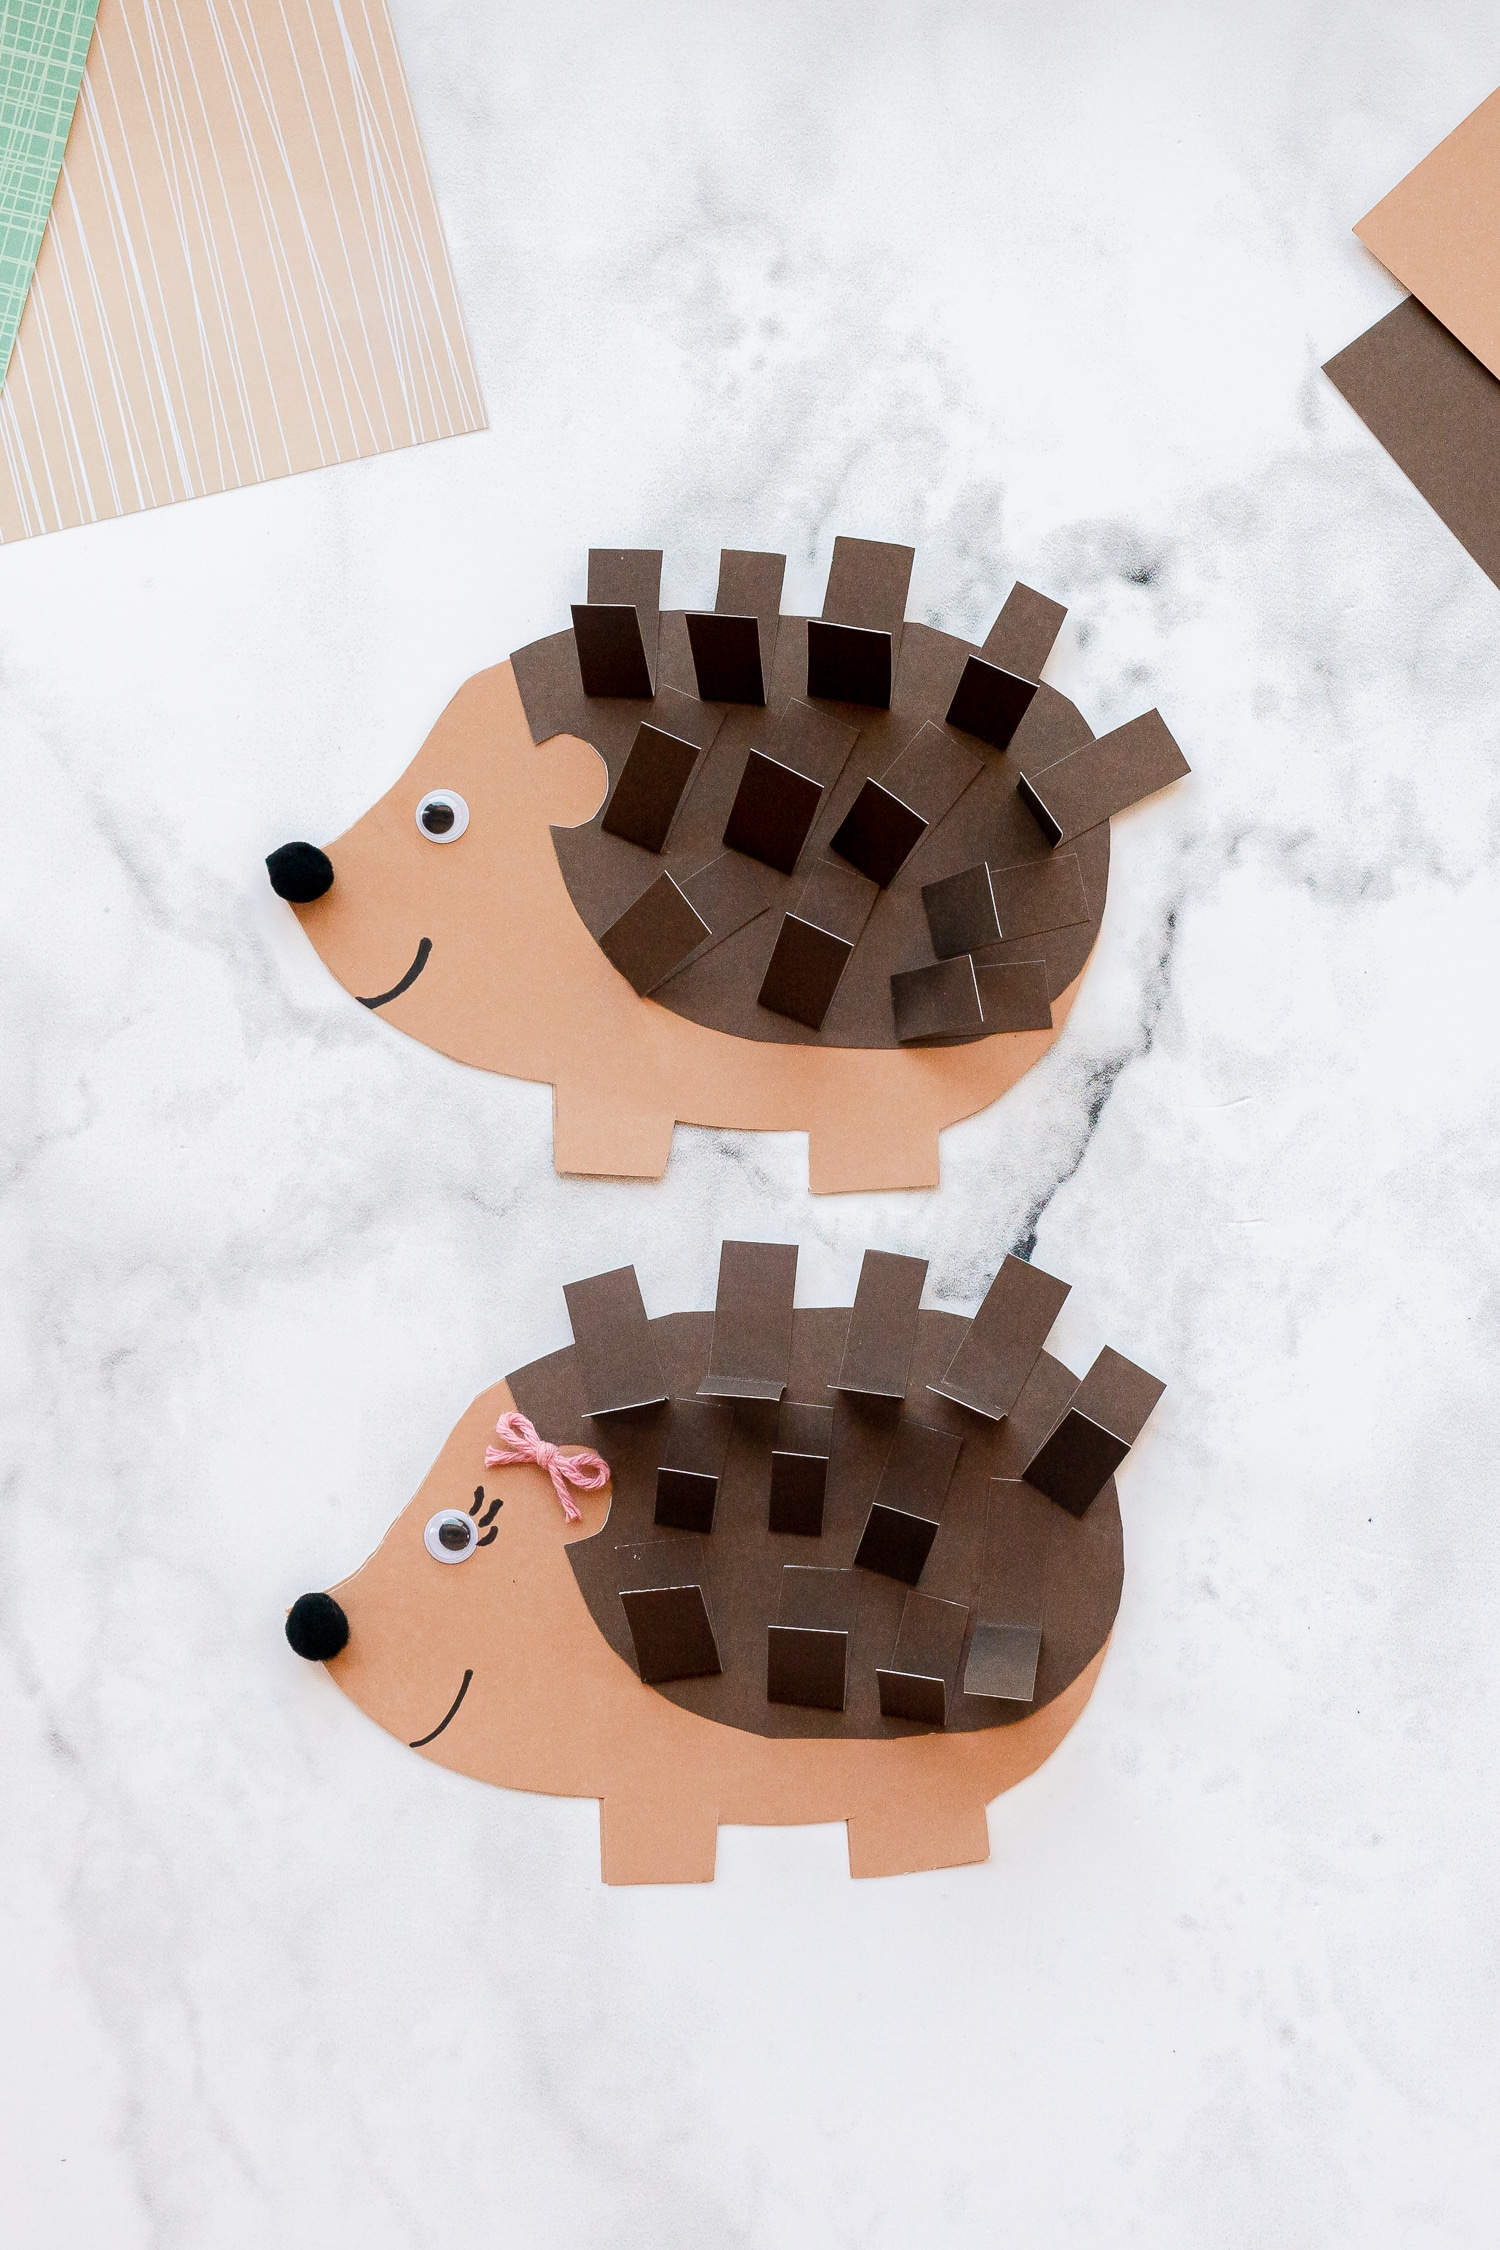 This hedgehog card makes for an adorable and easy homemade Father's day card! Grab the free template to make this project a breeze with the little ones.